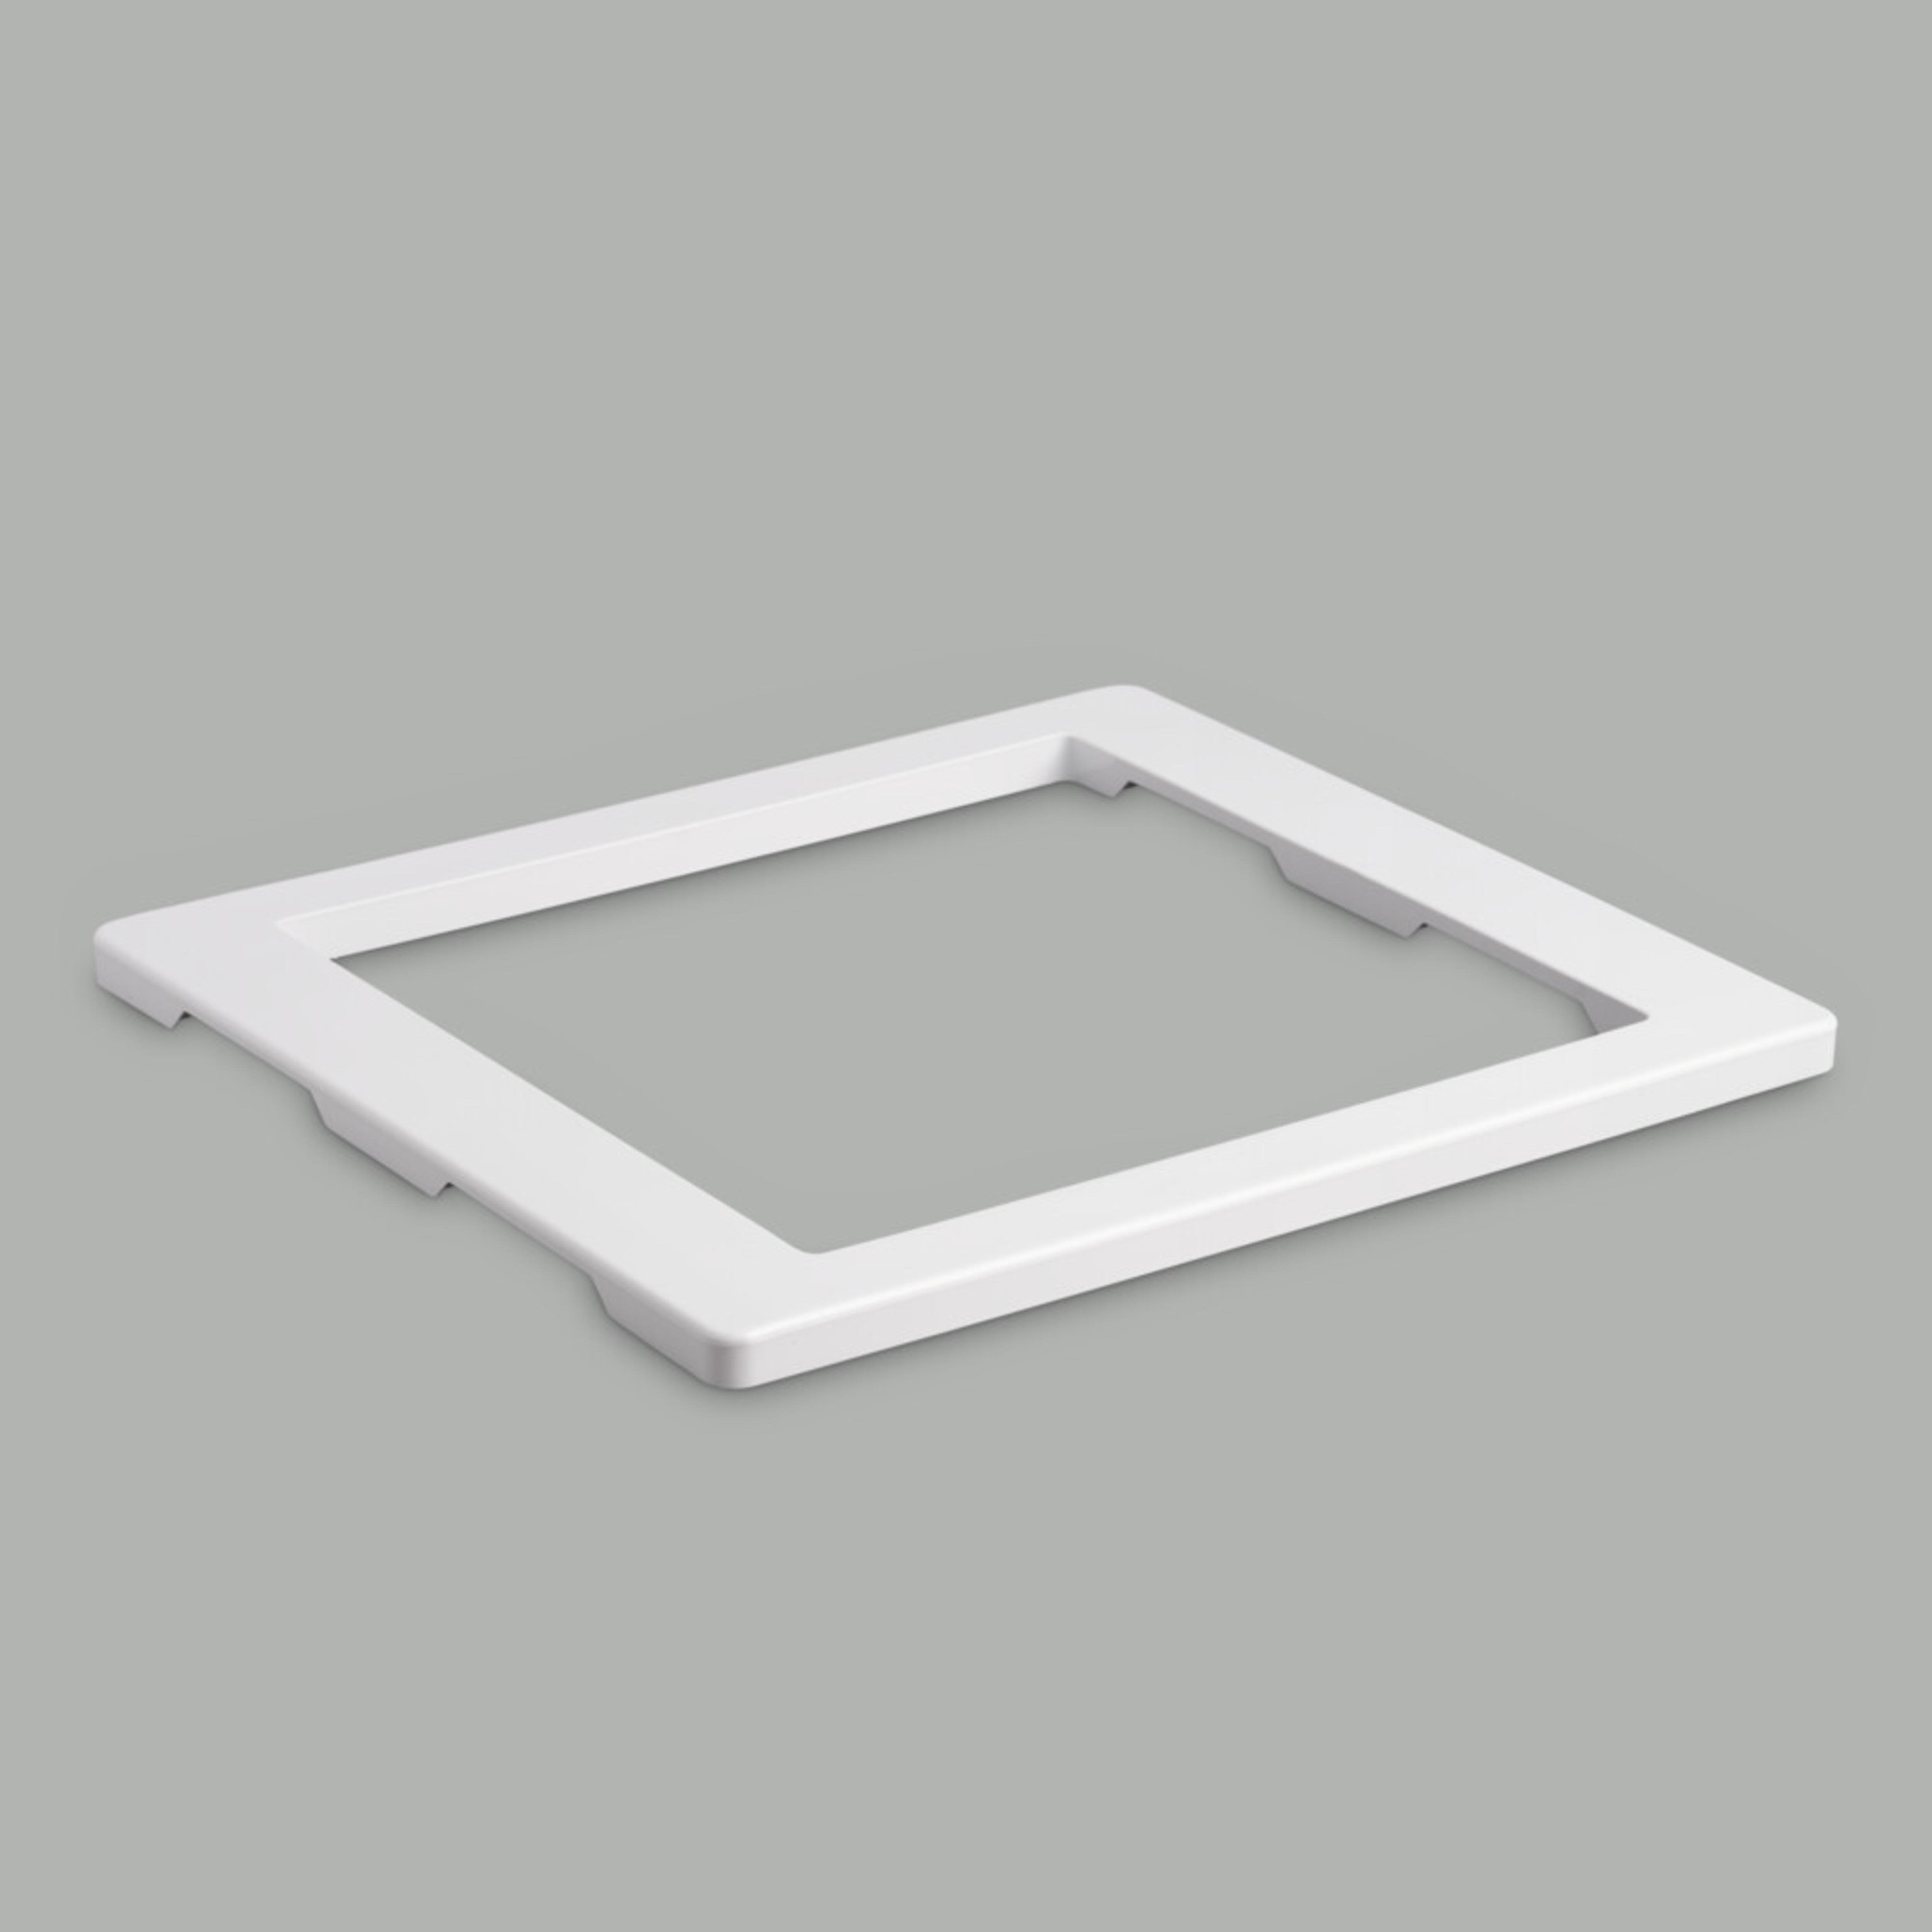 Dometic adapter frame